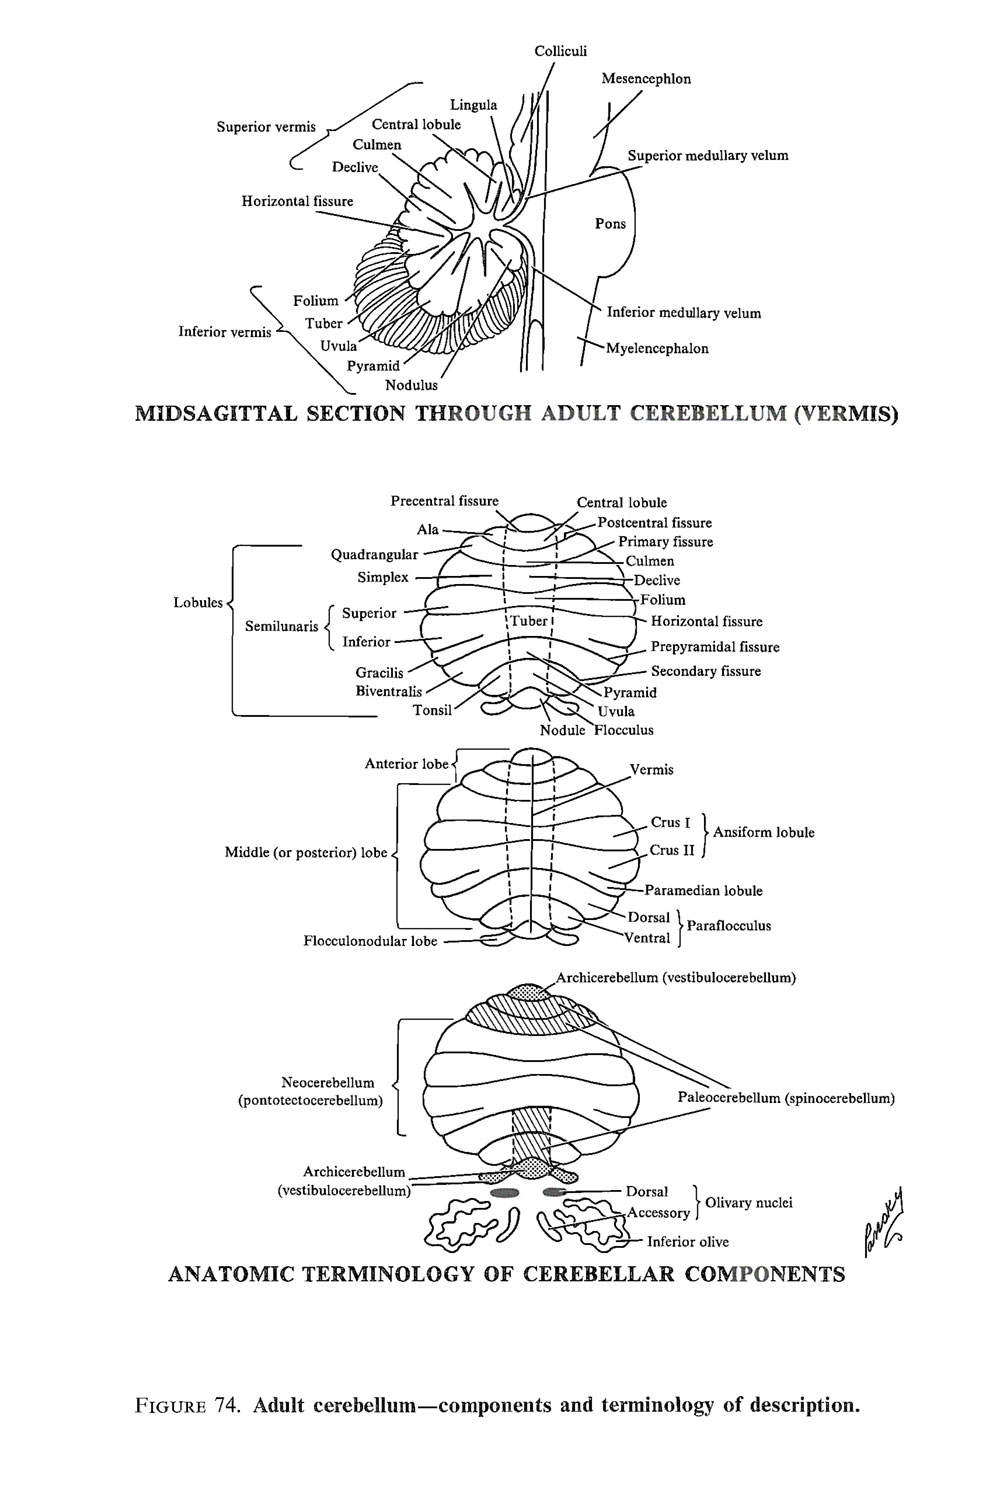 the brainstem: metencephalon  (fourth vesicle) – the cerebellum: image #3